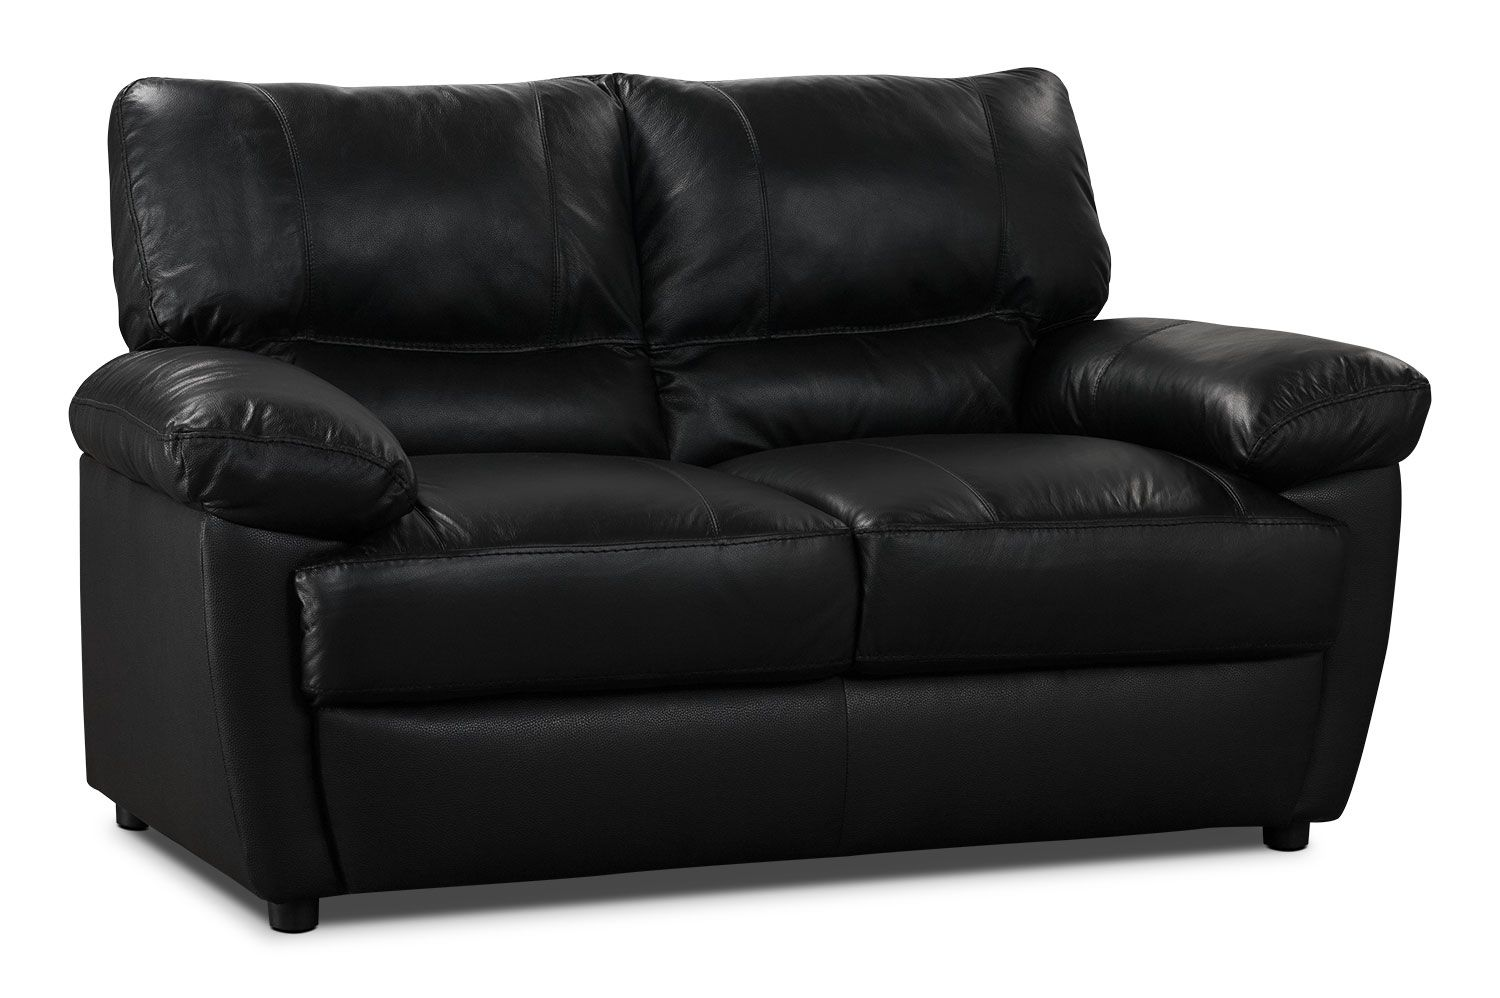 This Stunning Tess Loveseat Is Elegance Personified Using Exceptional Hand In Glove Tailoring Each Seat An Genuine Leather Sofa Black Leather Sofas Love Seat